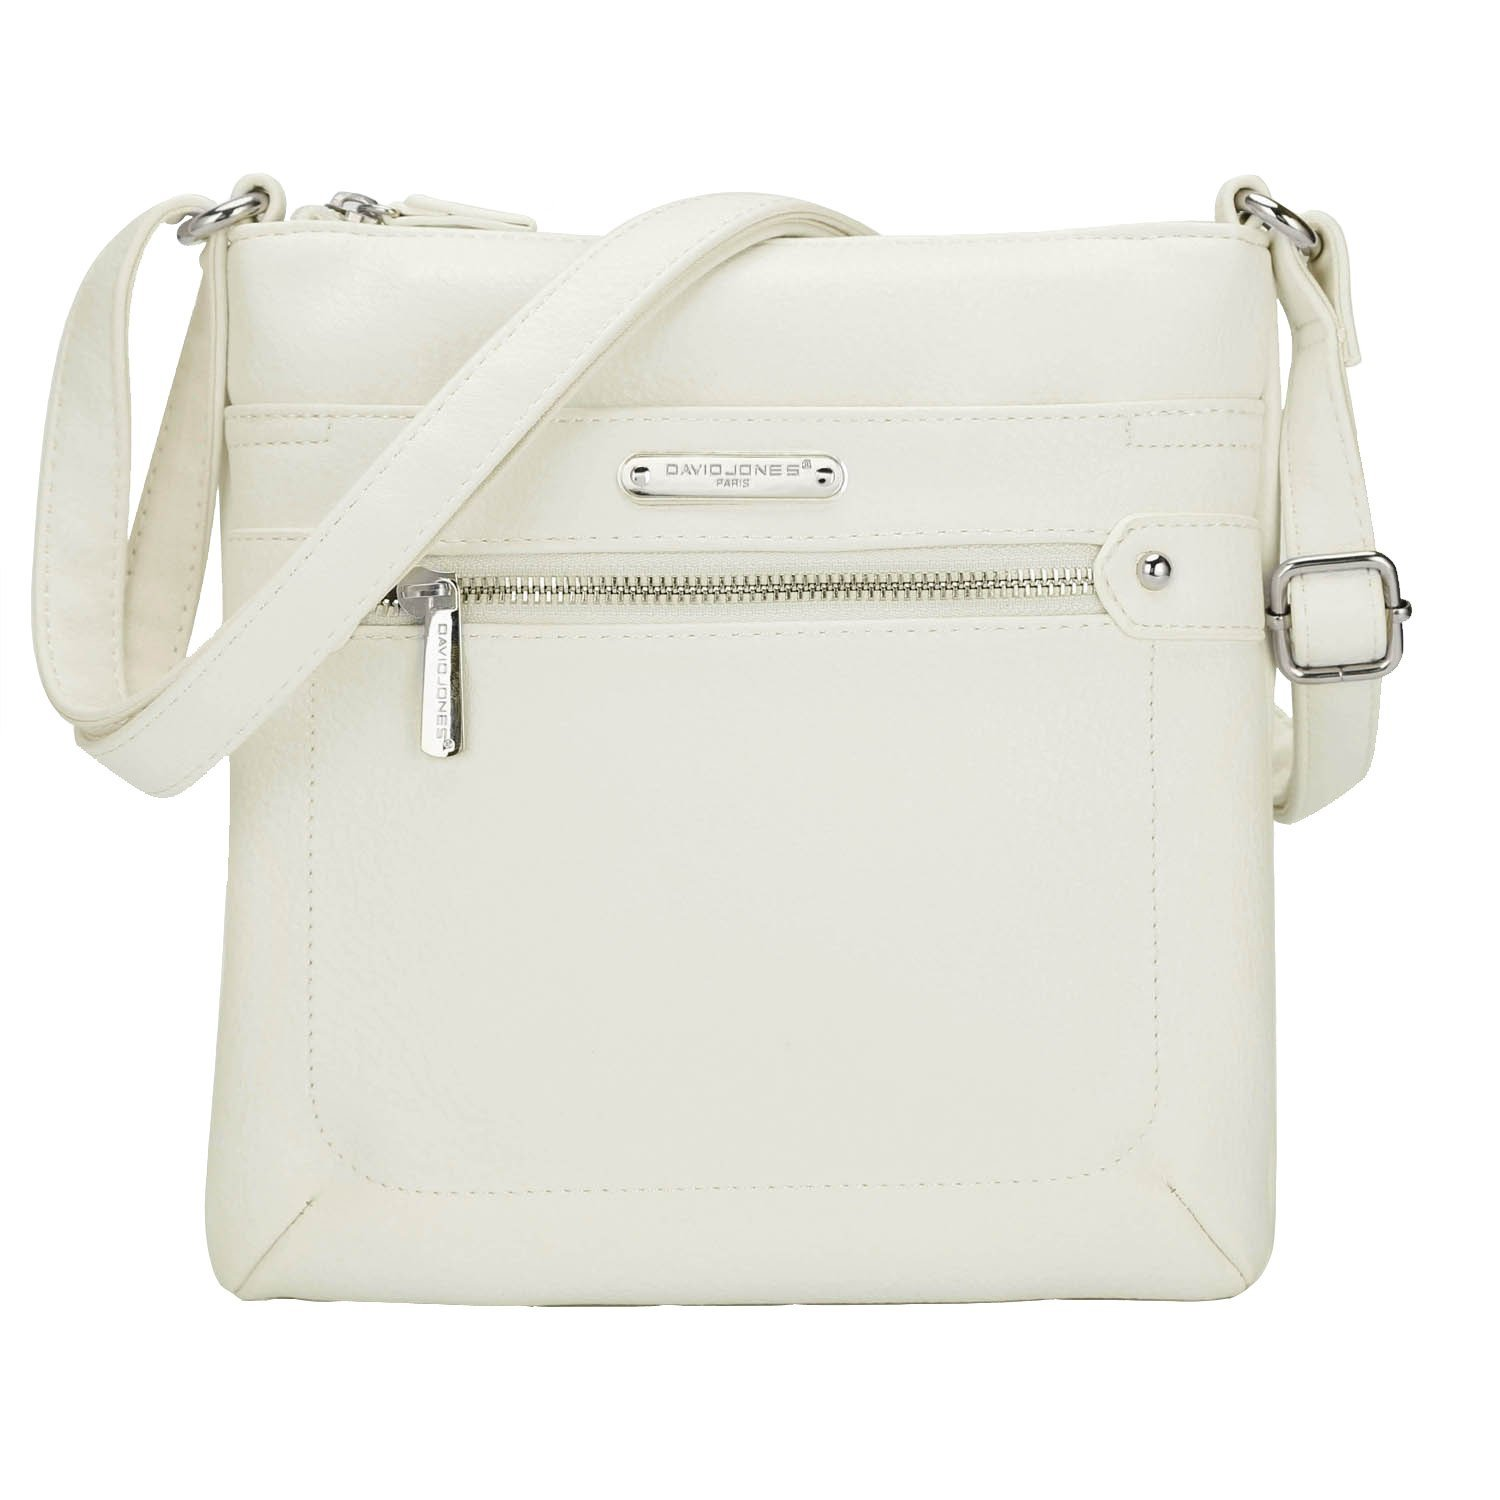 c3151896749c DAVID JONES Zipper Crossbody Purse for Woman Messenger Bags Faux Leather  Handbags with Shoulder Strap